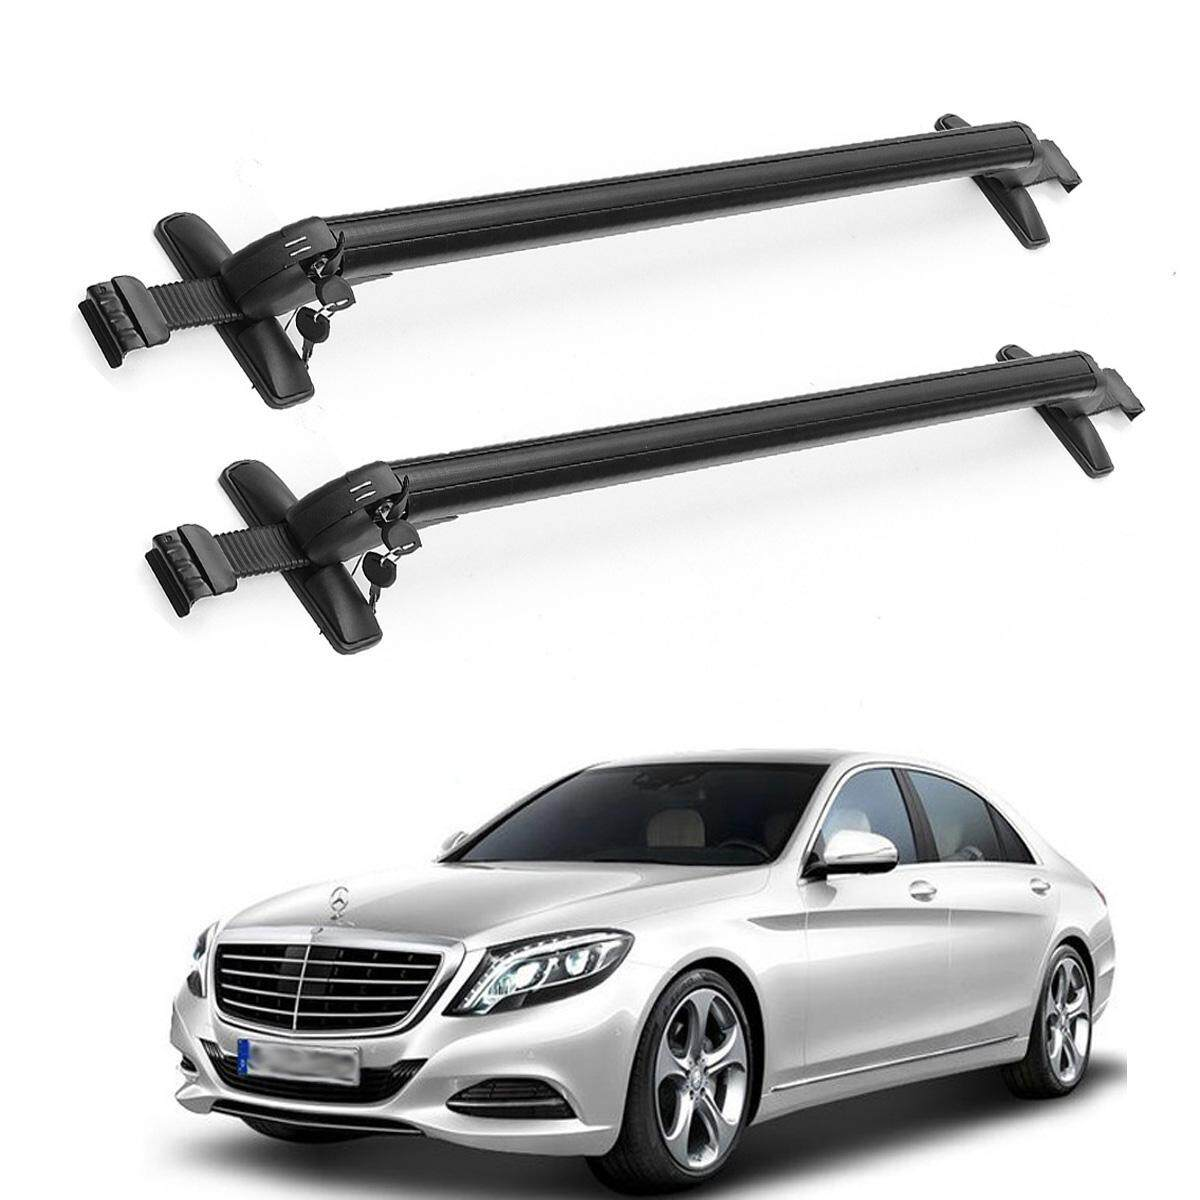 Black Anti Theft Car Roof Bars For Universal Cars Lockable Aluminum Bars Rack By Audew.